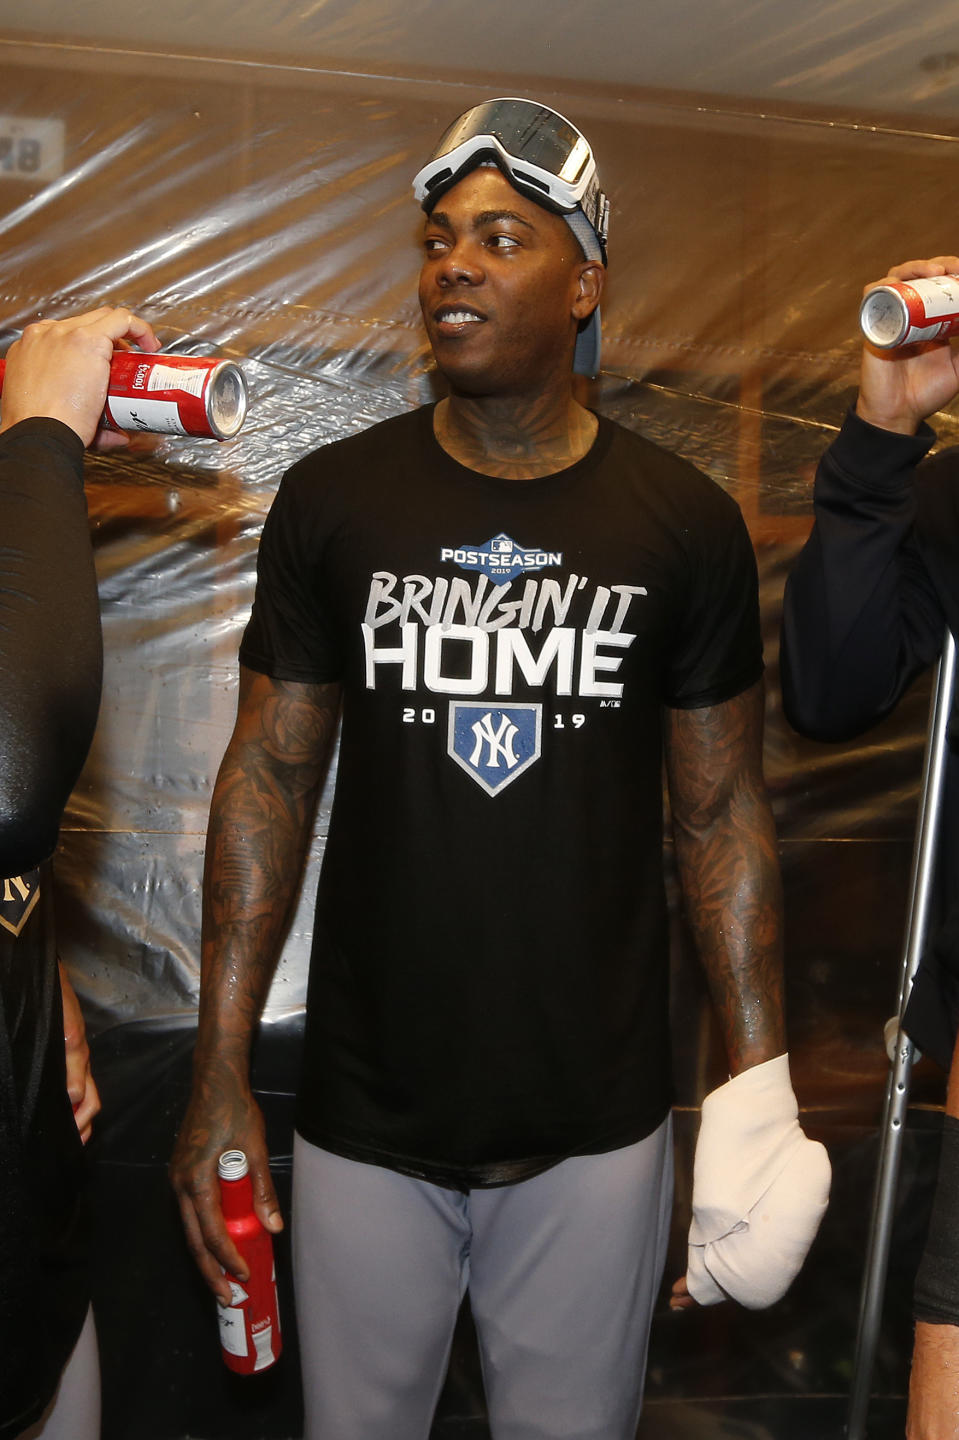 Aroldis Chapman's pitching hand was in a heavy wrap after he says he was hit with a bottle in the clubhouse. (Getty)